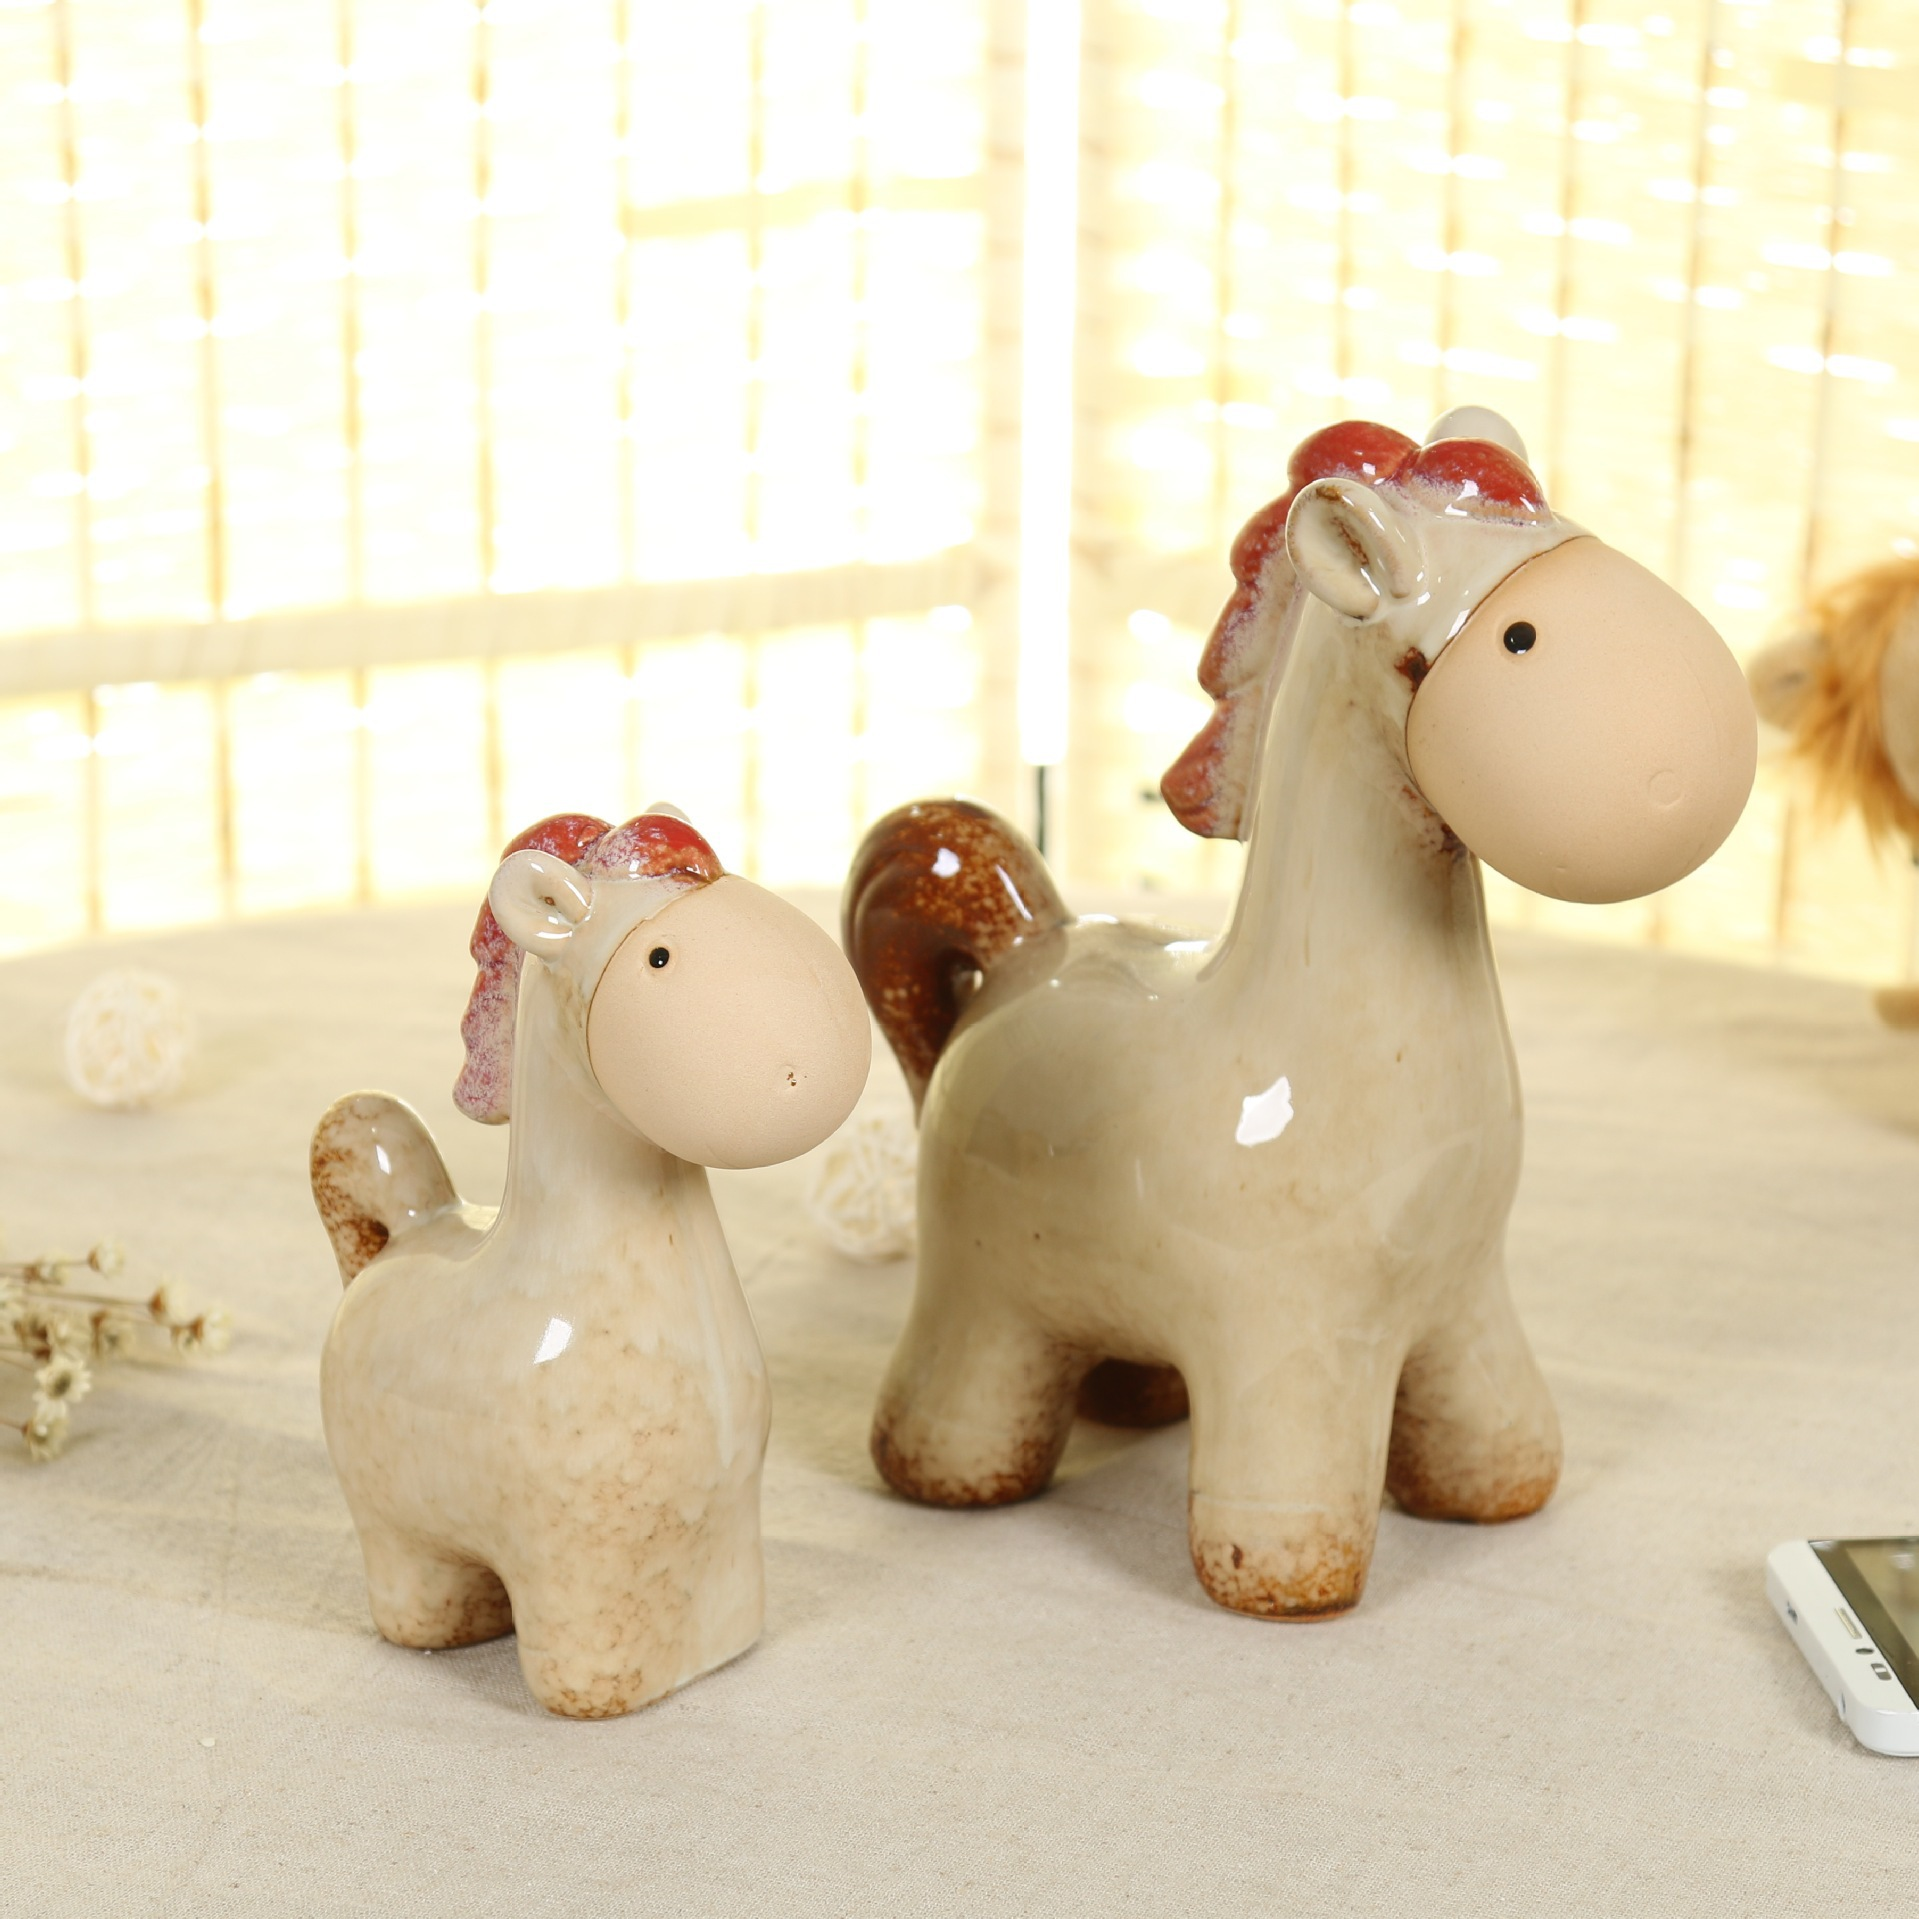 Creative ceramic ornament crafts porcelain Mini horse set Desktop/ home decoration ornaments Birthday gift Christmas present